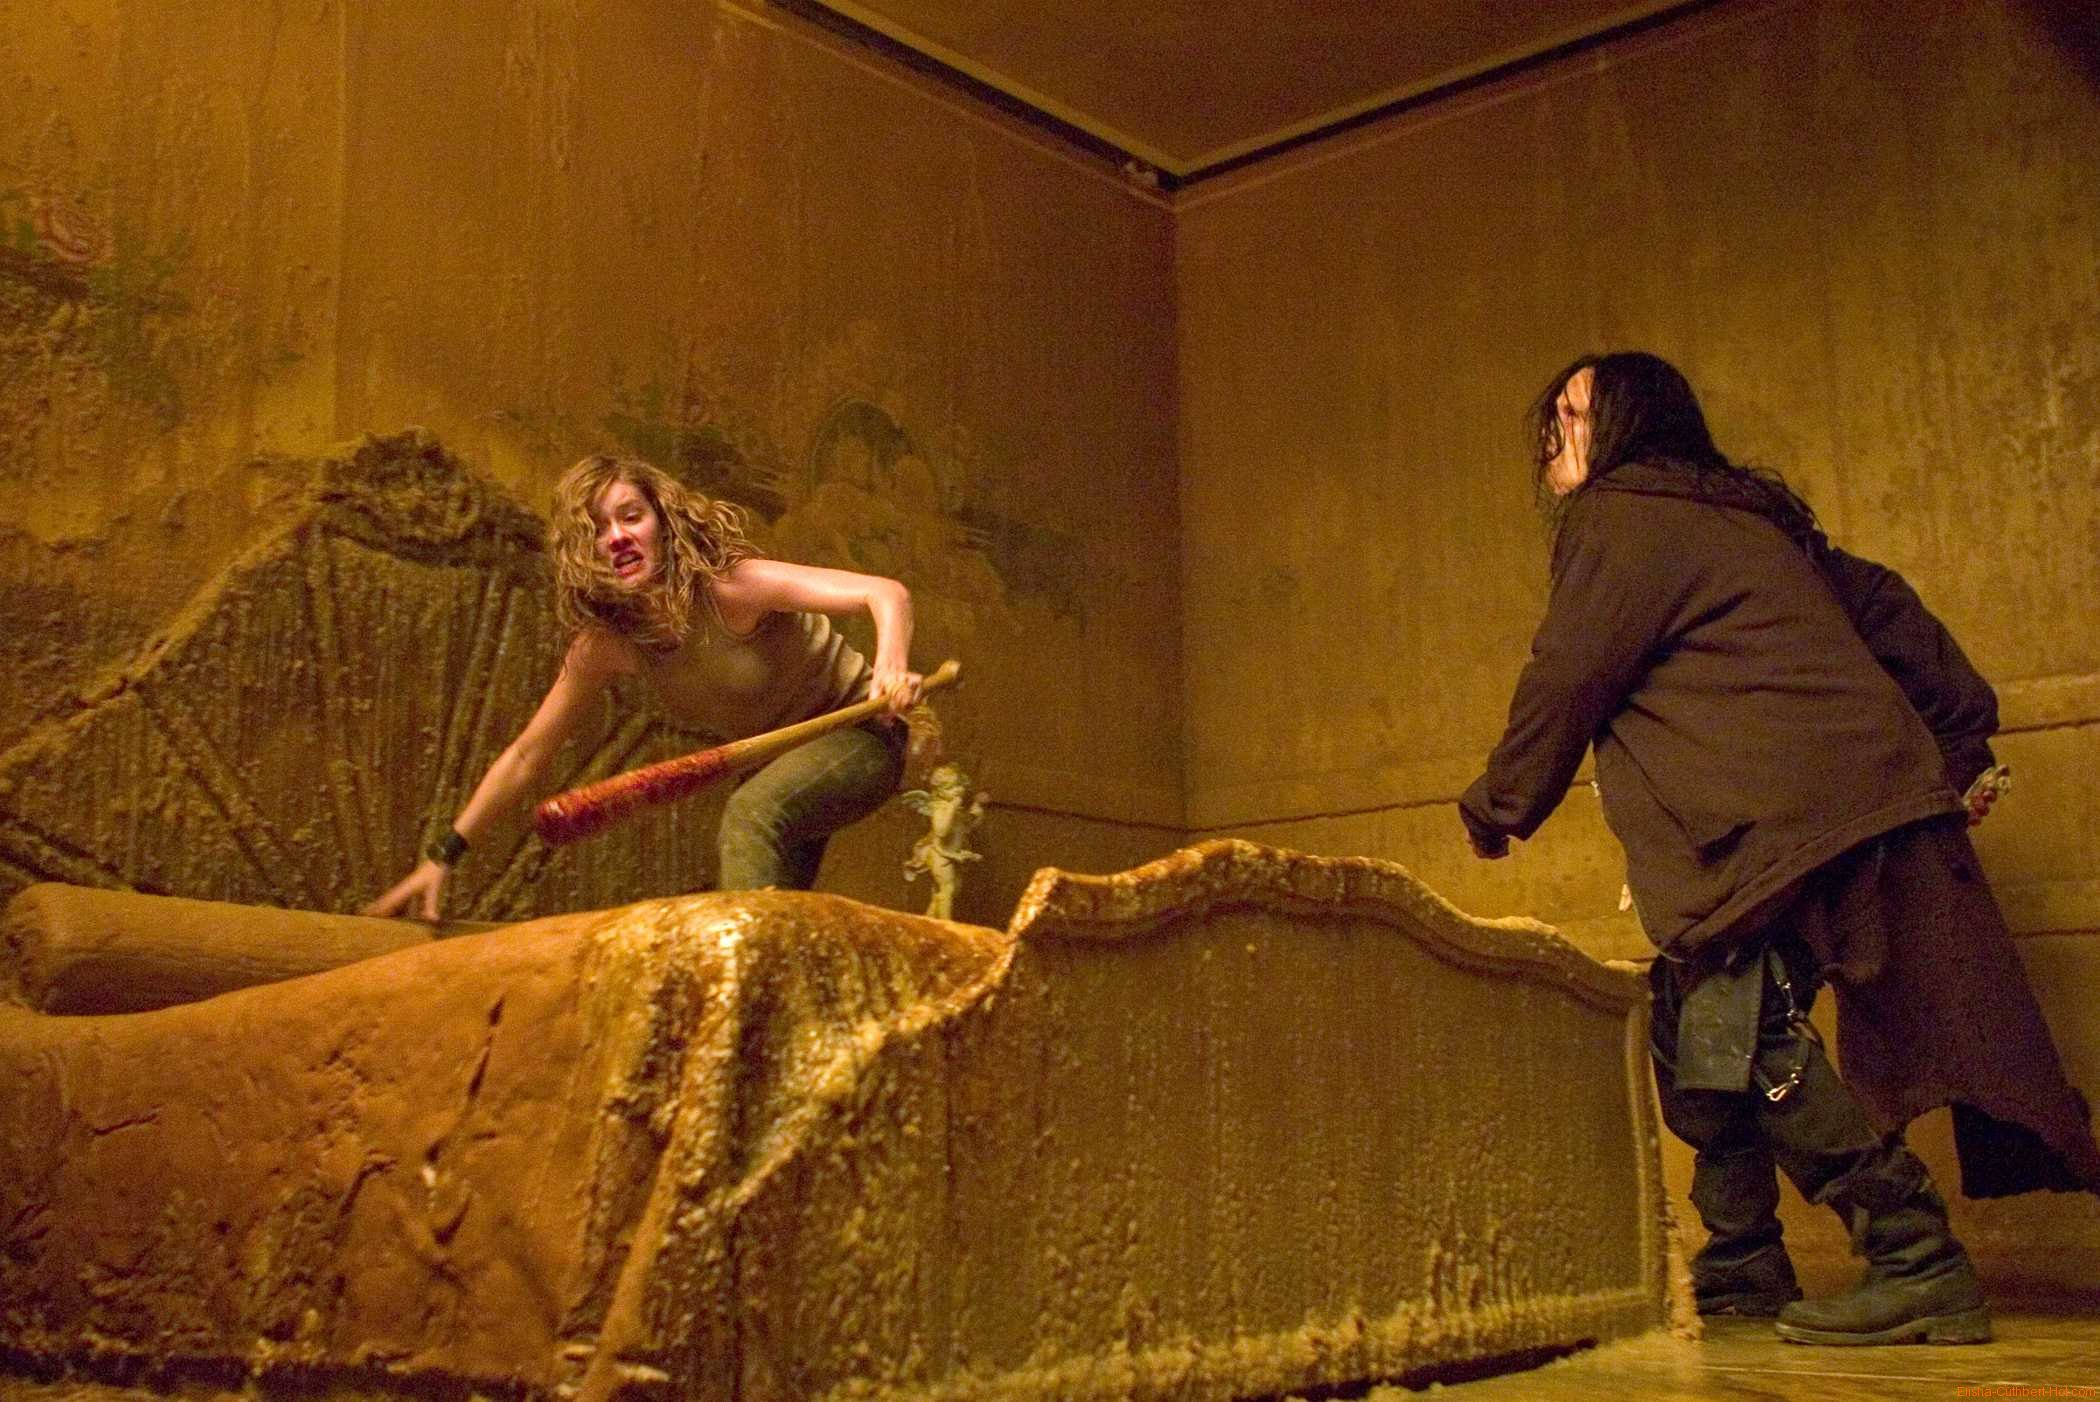 Elisha Cuthbert pursued by Brian Van Holt through the House of Wax (2005)